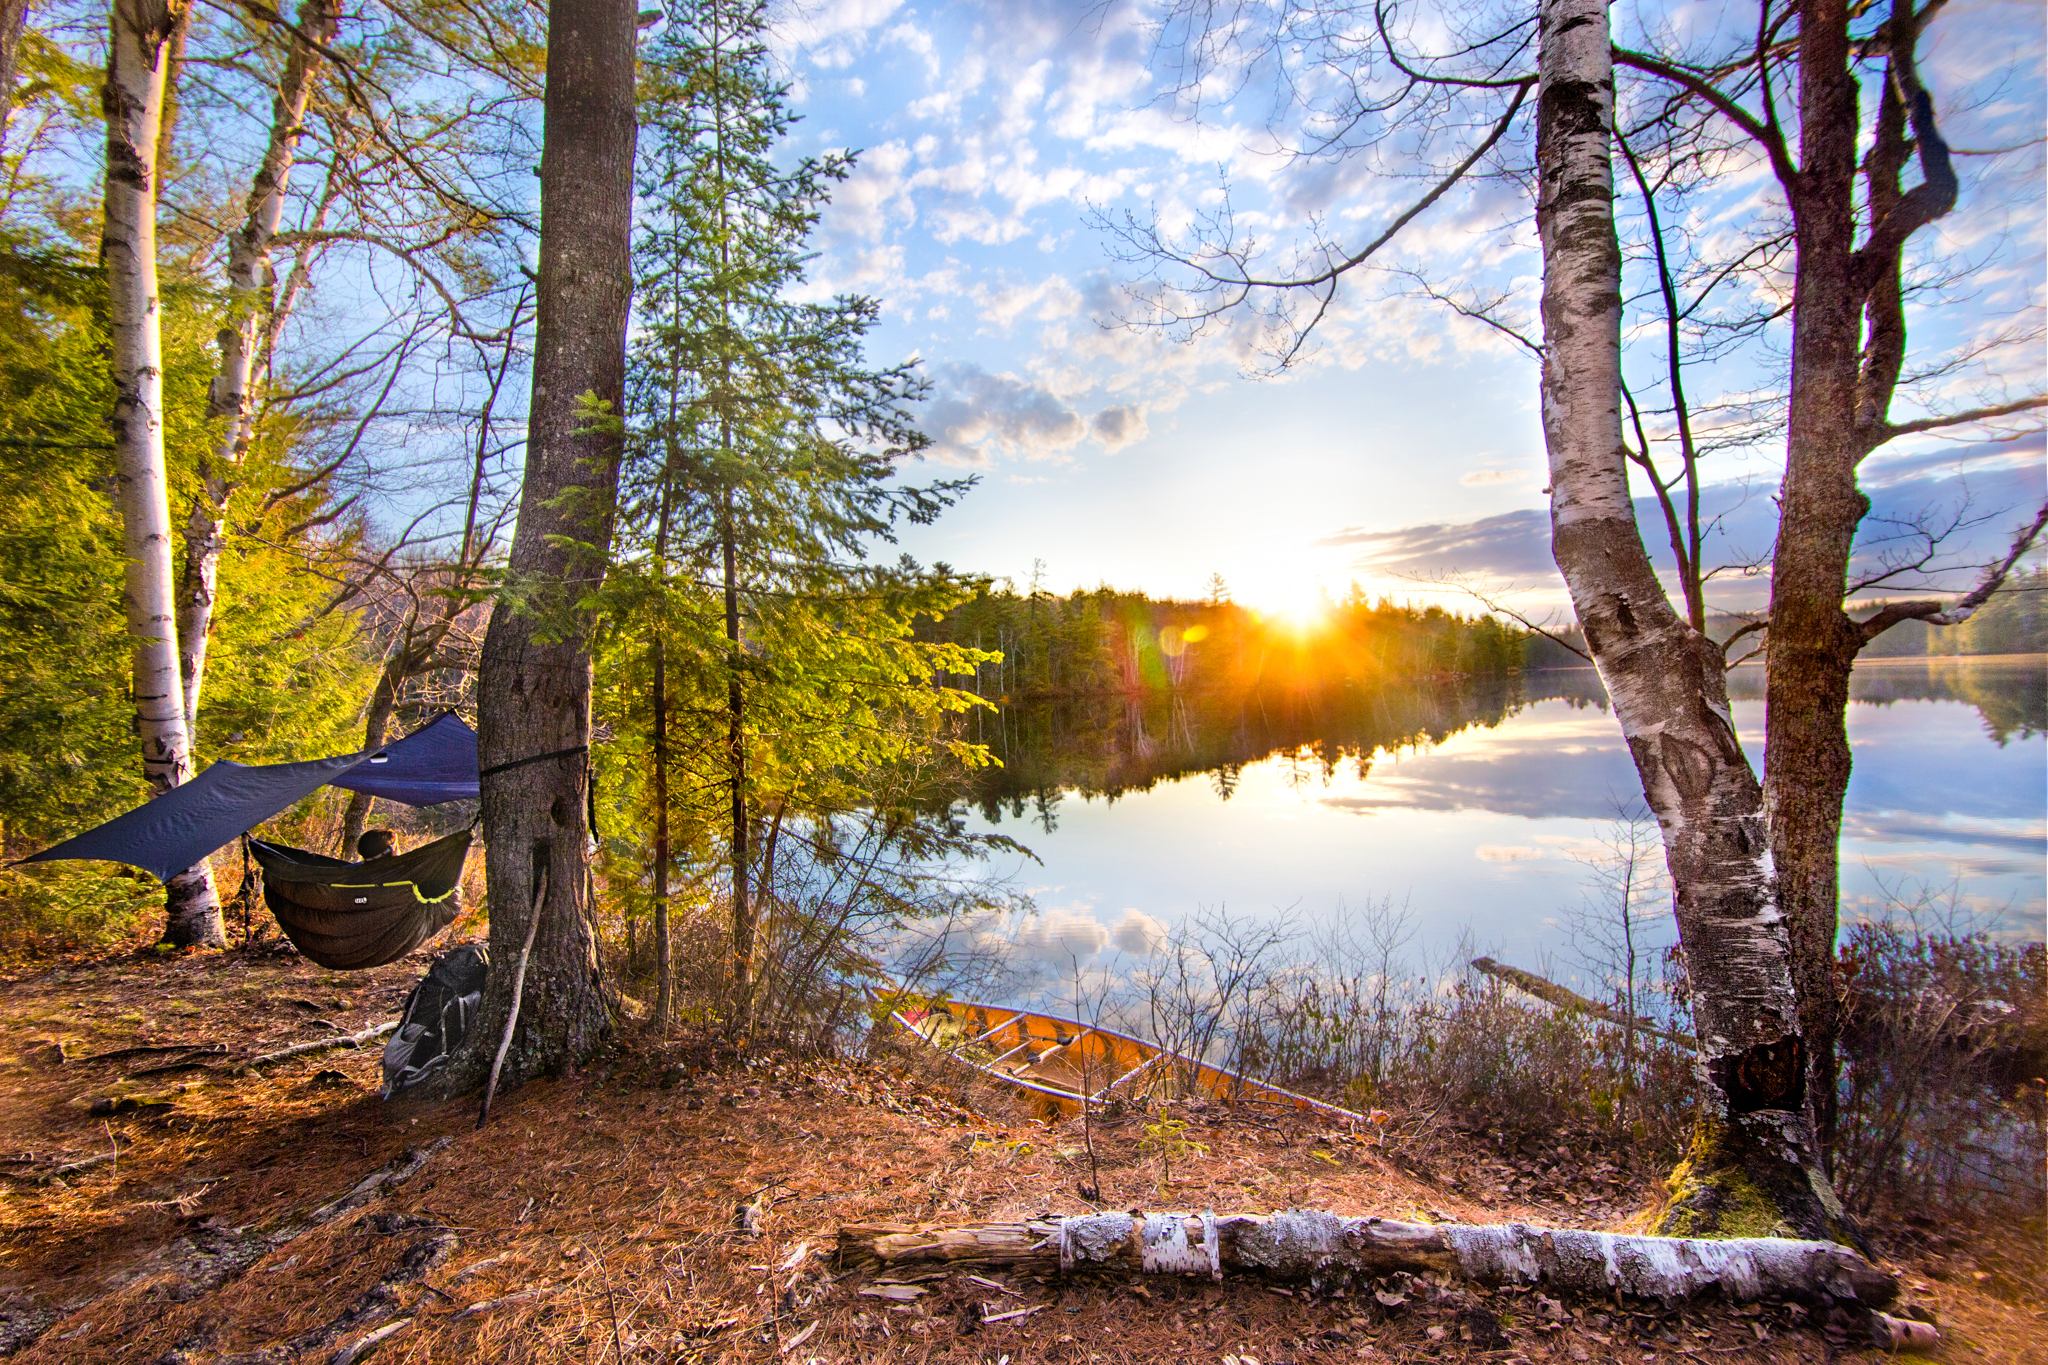 Sunrise at our second campsitein the Eagles Nest Outfitters Hammock.